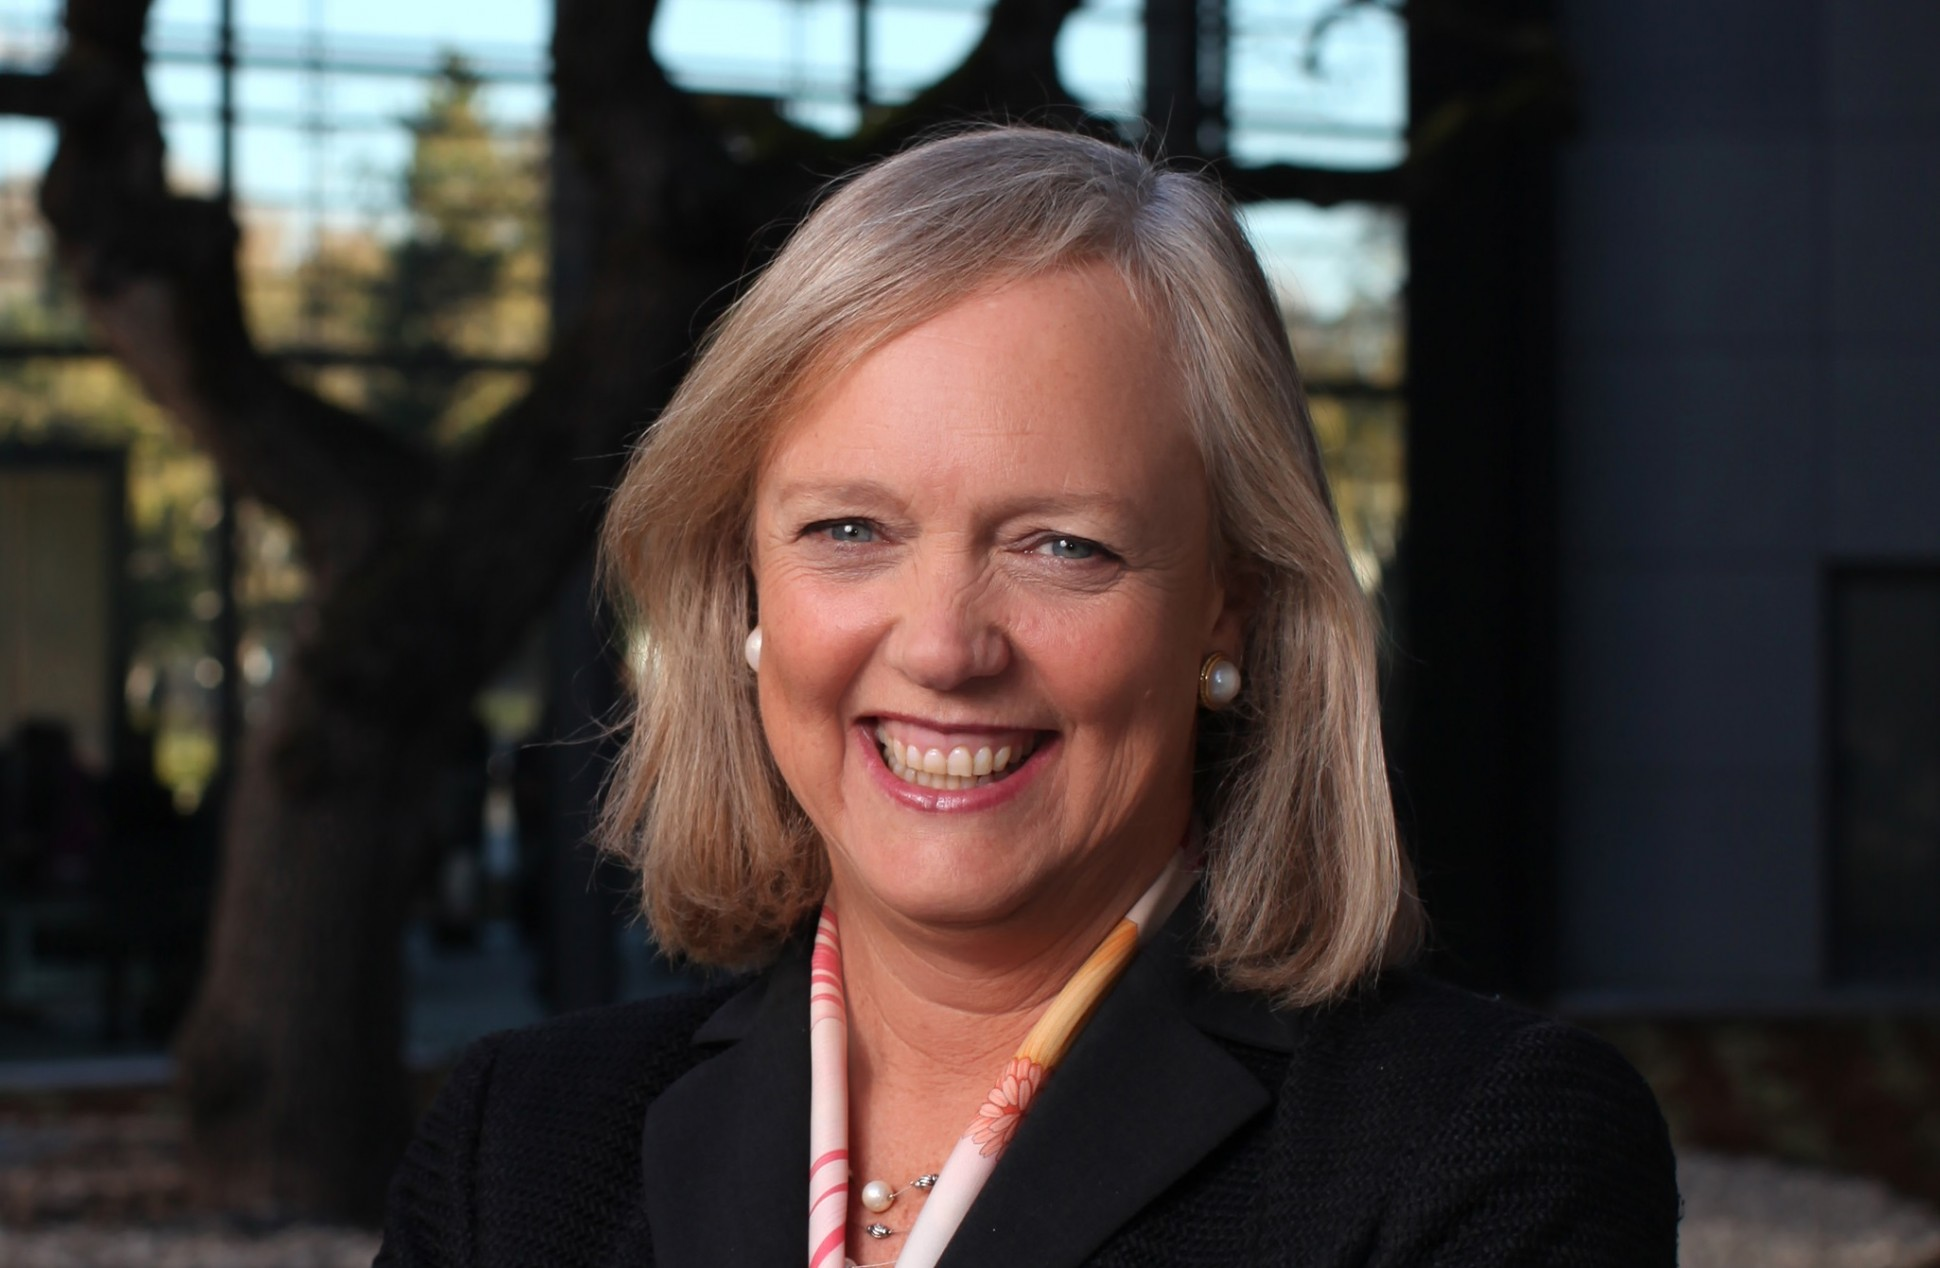 meg whitman, ceo of ebay one of the richest female ceos in the world essay Meg whitman, ceo of hewlett-packard in 1998, ebay was a 3-year-old start-up with 30 employees and revenue of less than $5 million when she left a decade later, the auction site had $8 billion in sales, 15,000 workers and operations in 30 countries, despite the missed opportunity in japan.